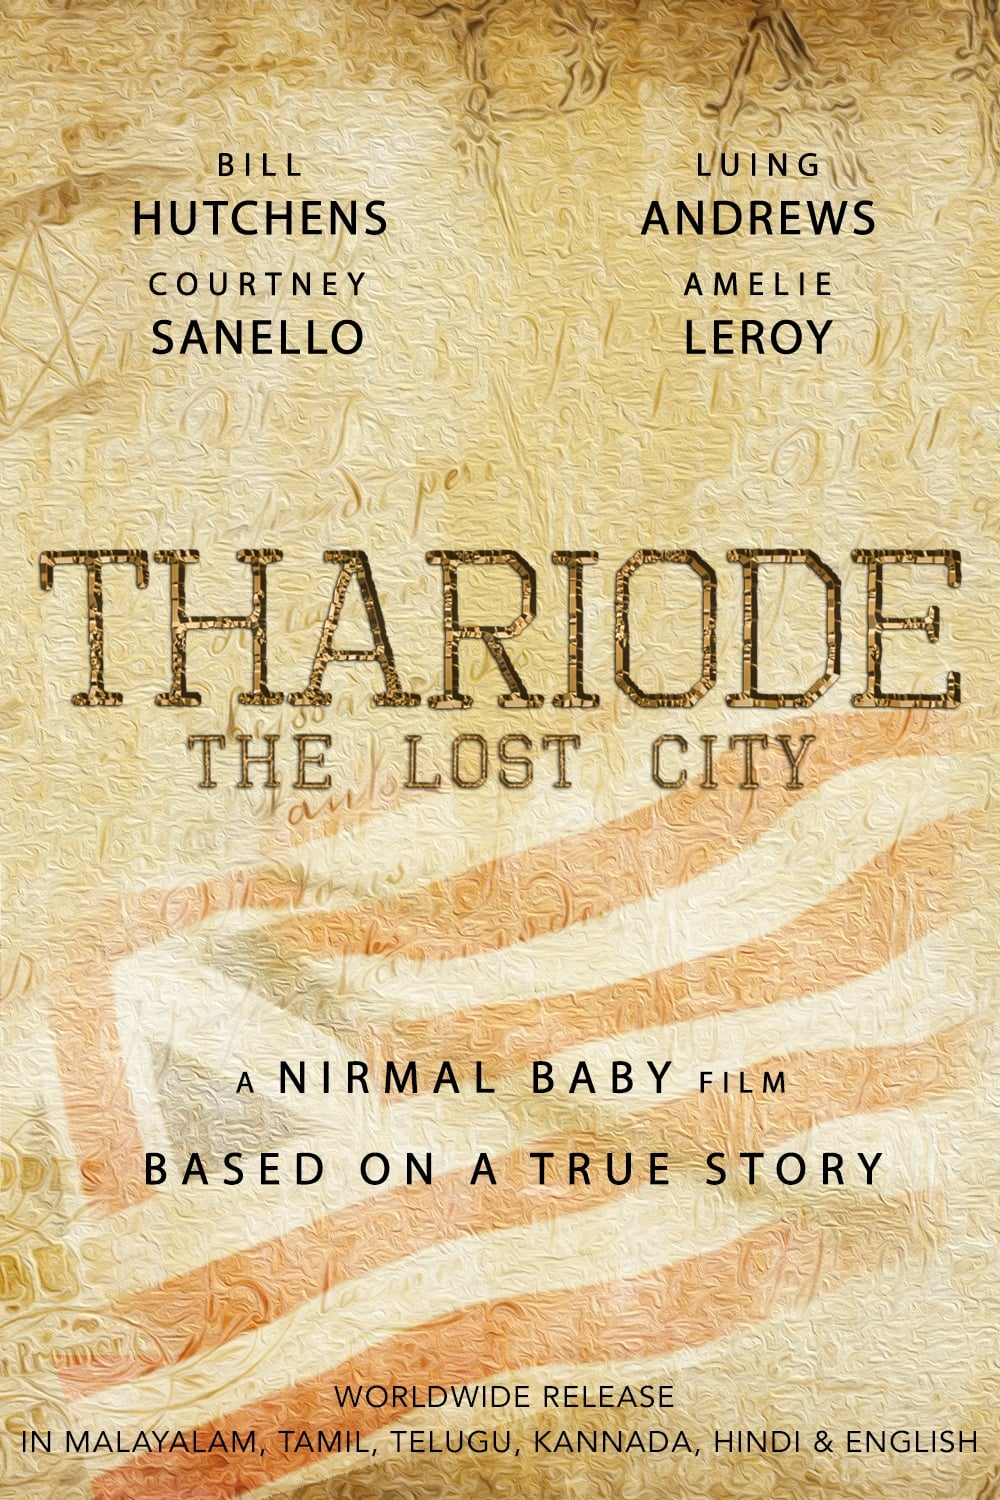 Thariode: The Lost City (1970)